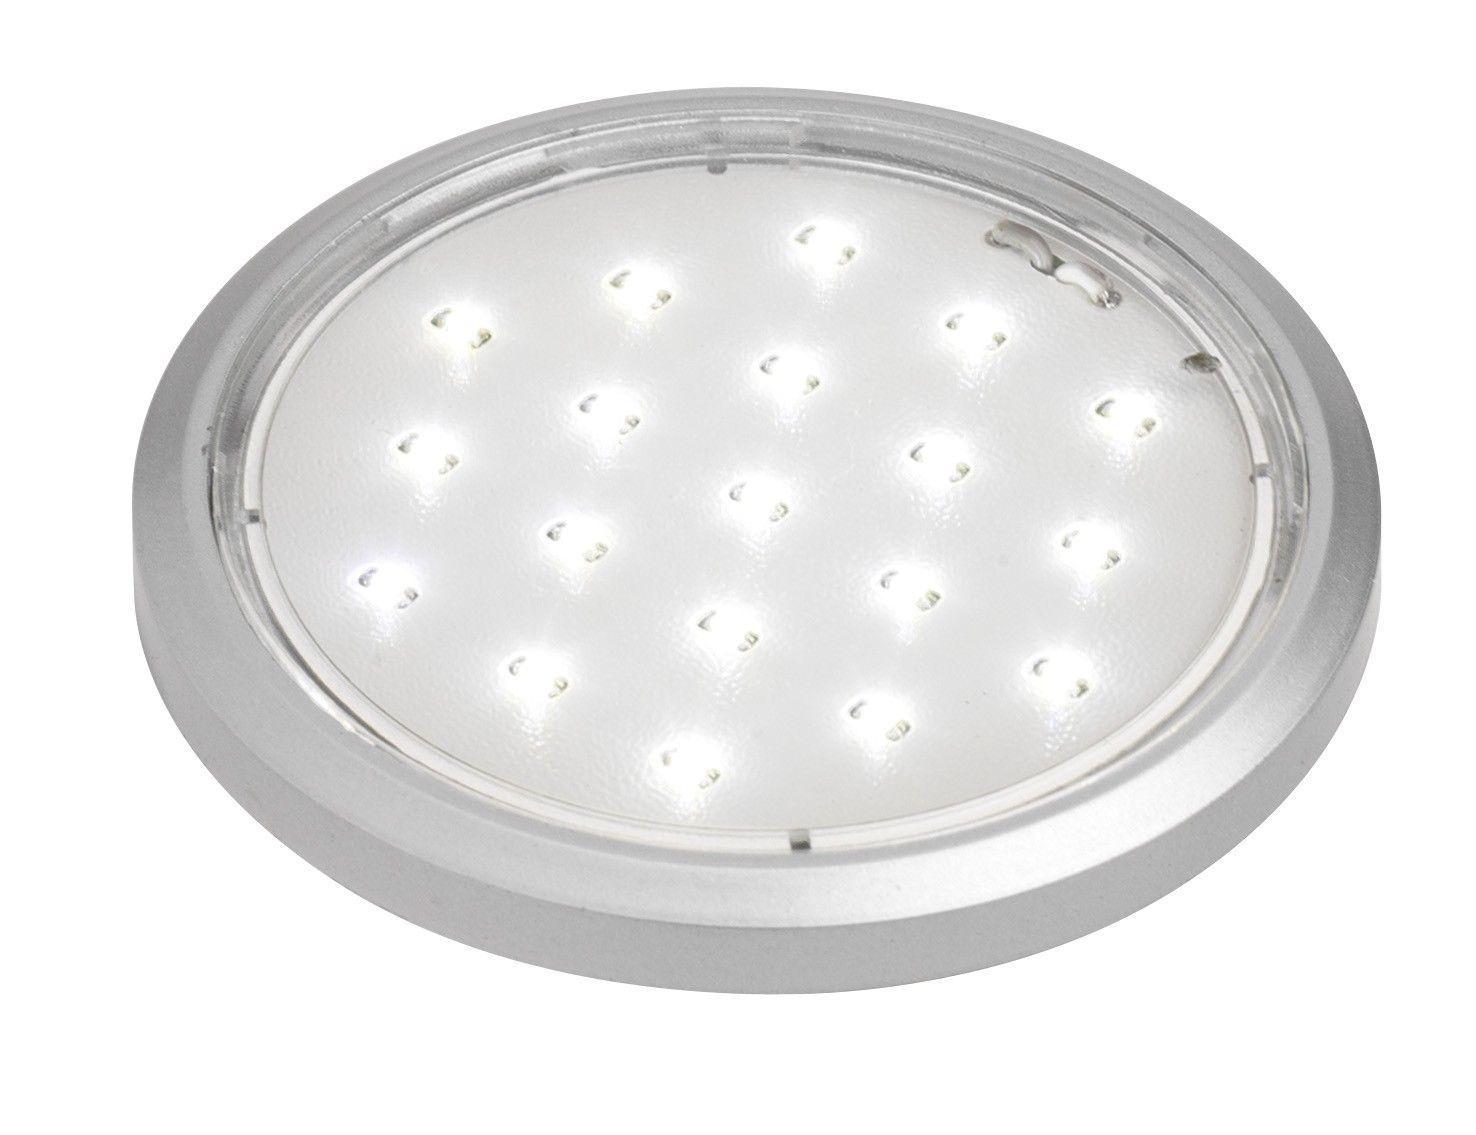 LED round downlight 19 LED warm white 12volt 1.4watt silver